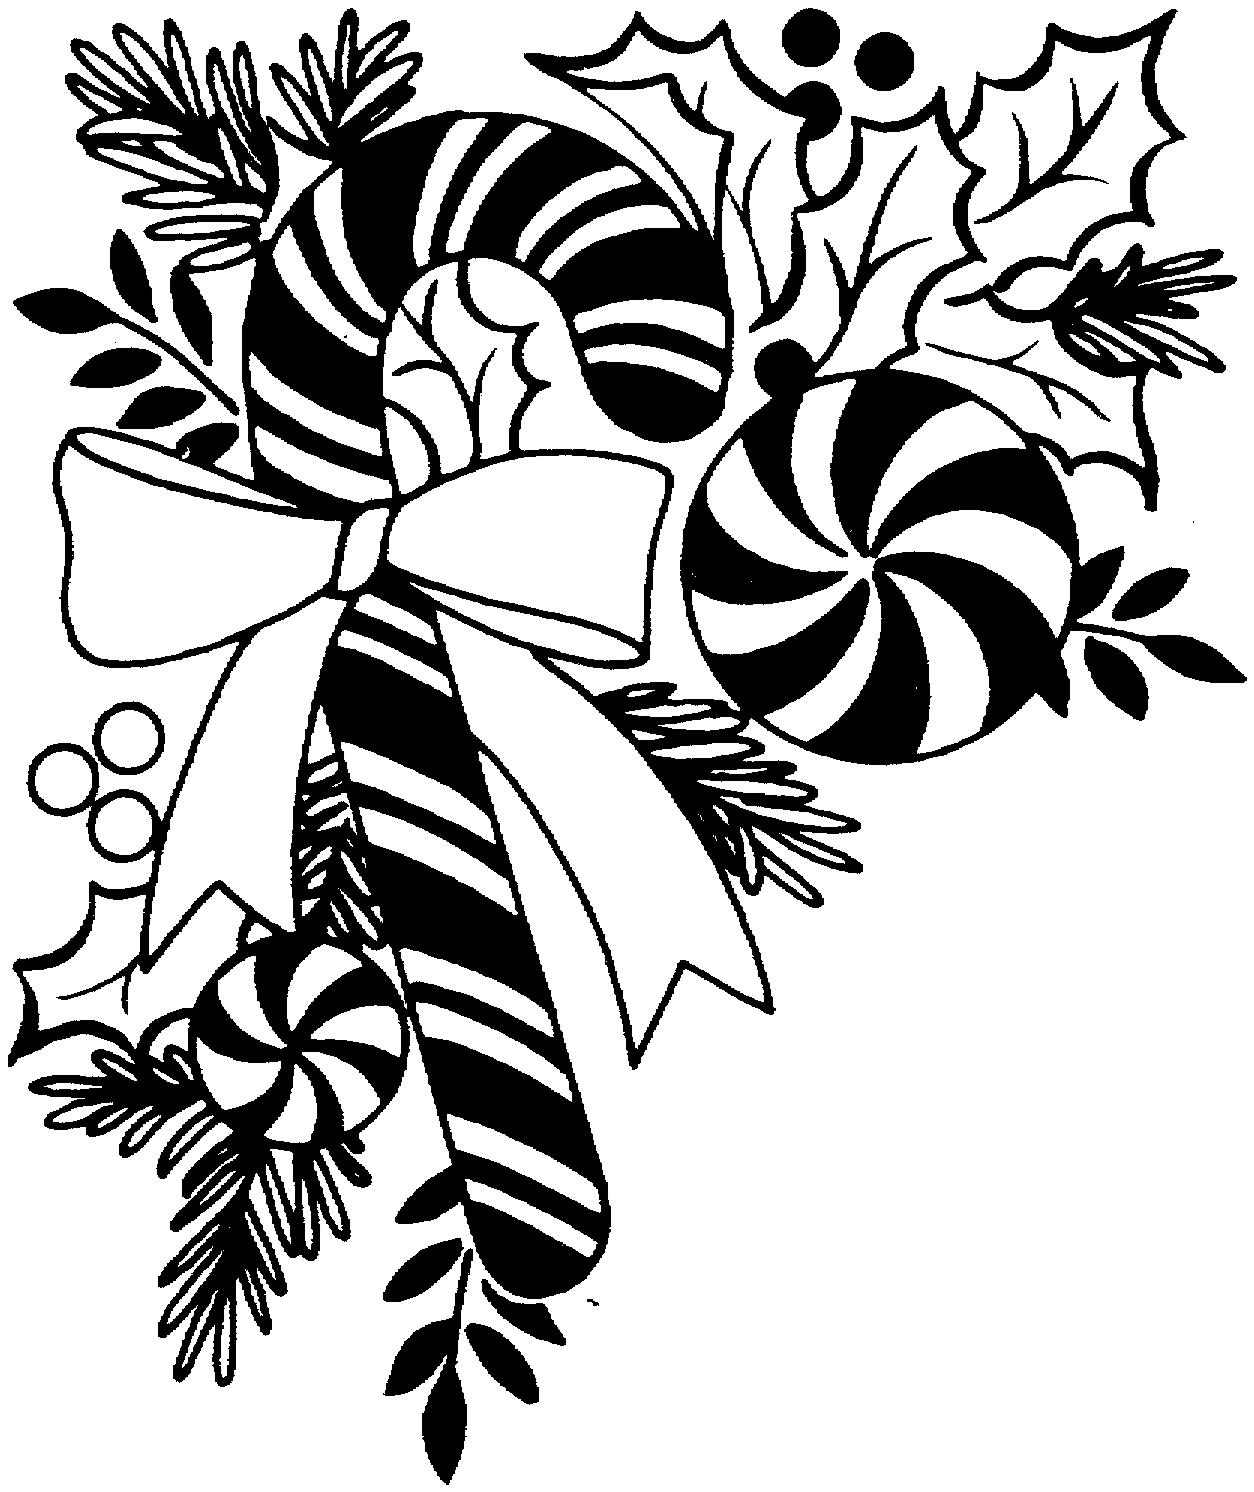 Happy Holidays Clip Art Black And White -Happy Holidays Clip Art Black And White Free Desktop 8 HD .-10